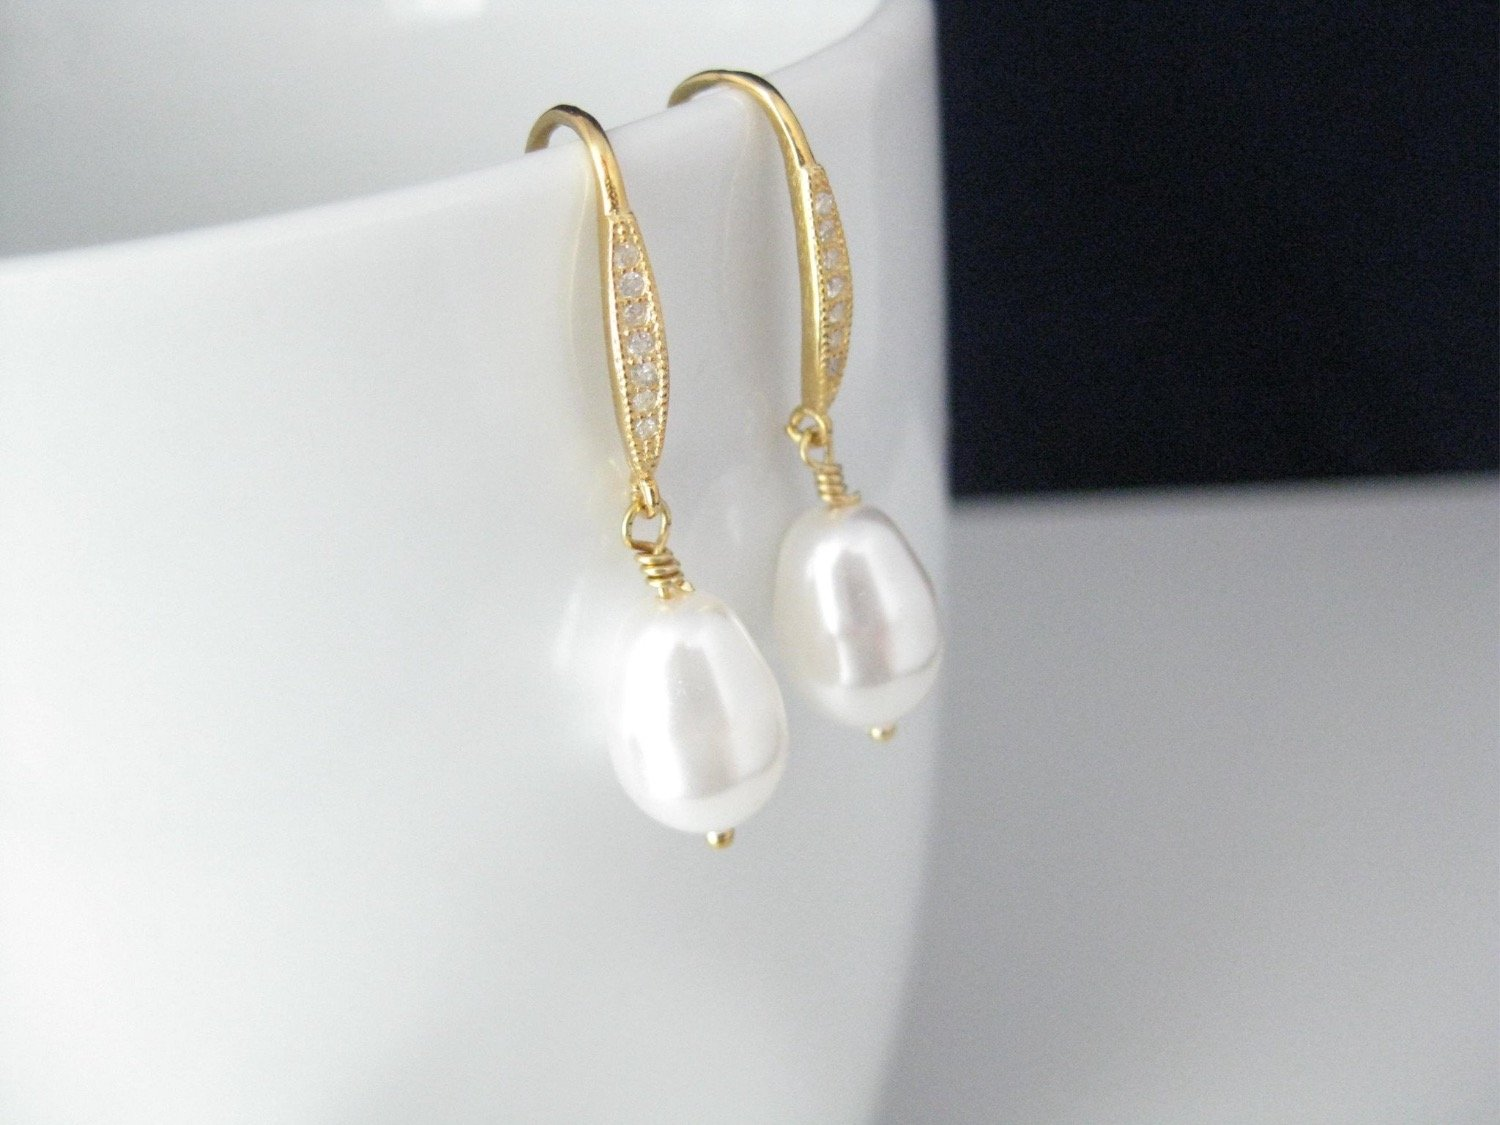 White Pearl Drop Earrings Wedding Jewelry with 14K gold filled on .925 Sterling Silver Cubic Zirconia Ear wires - Clairesbridal - 3